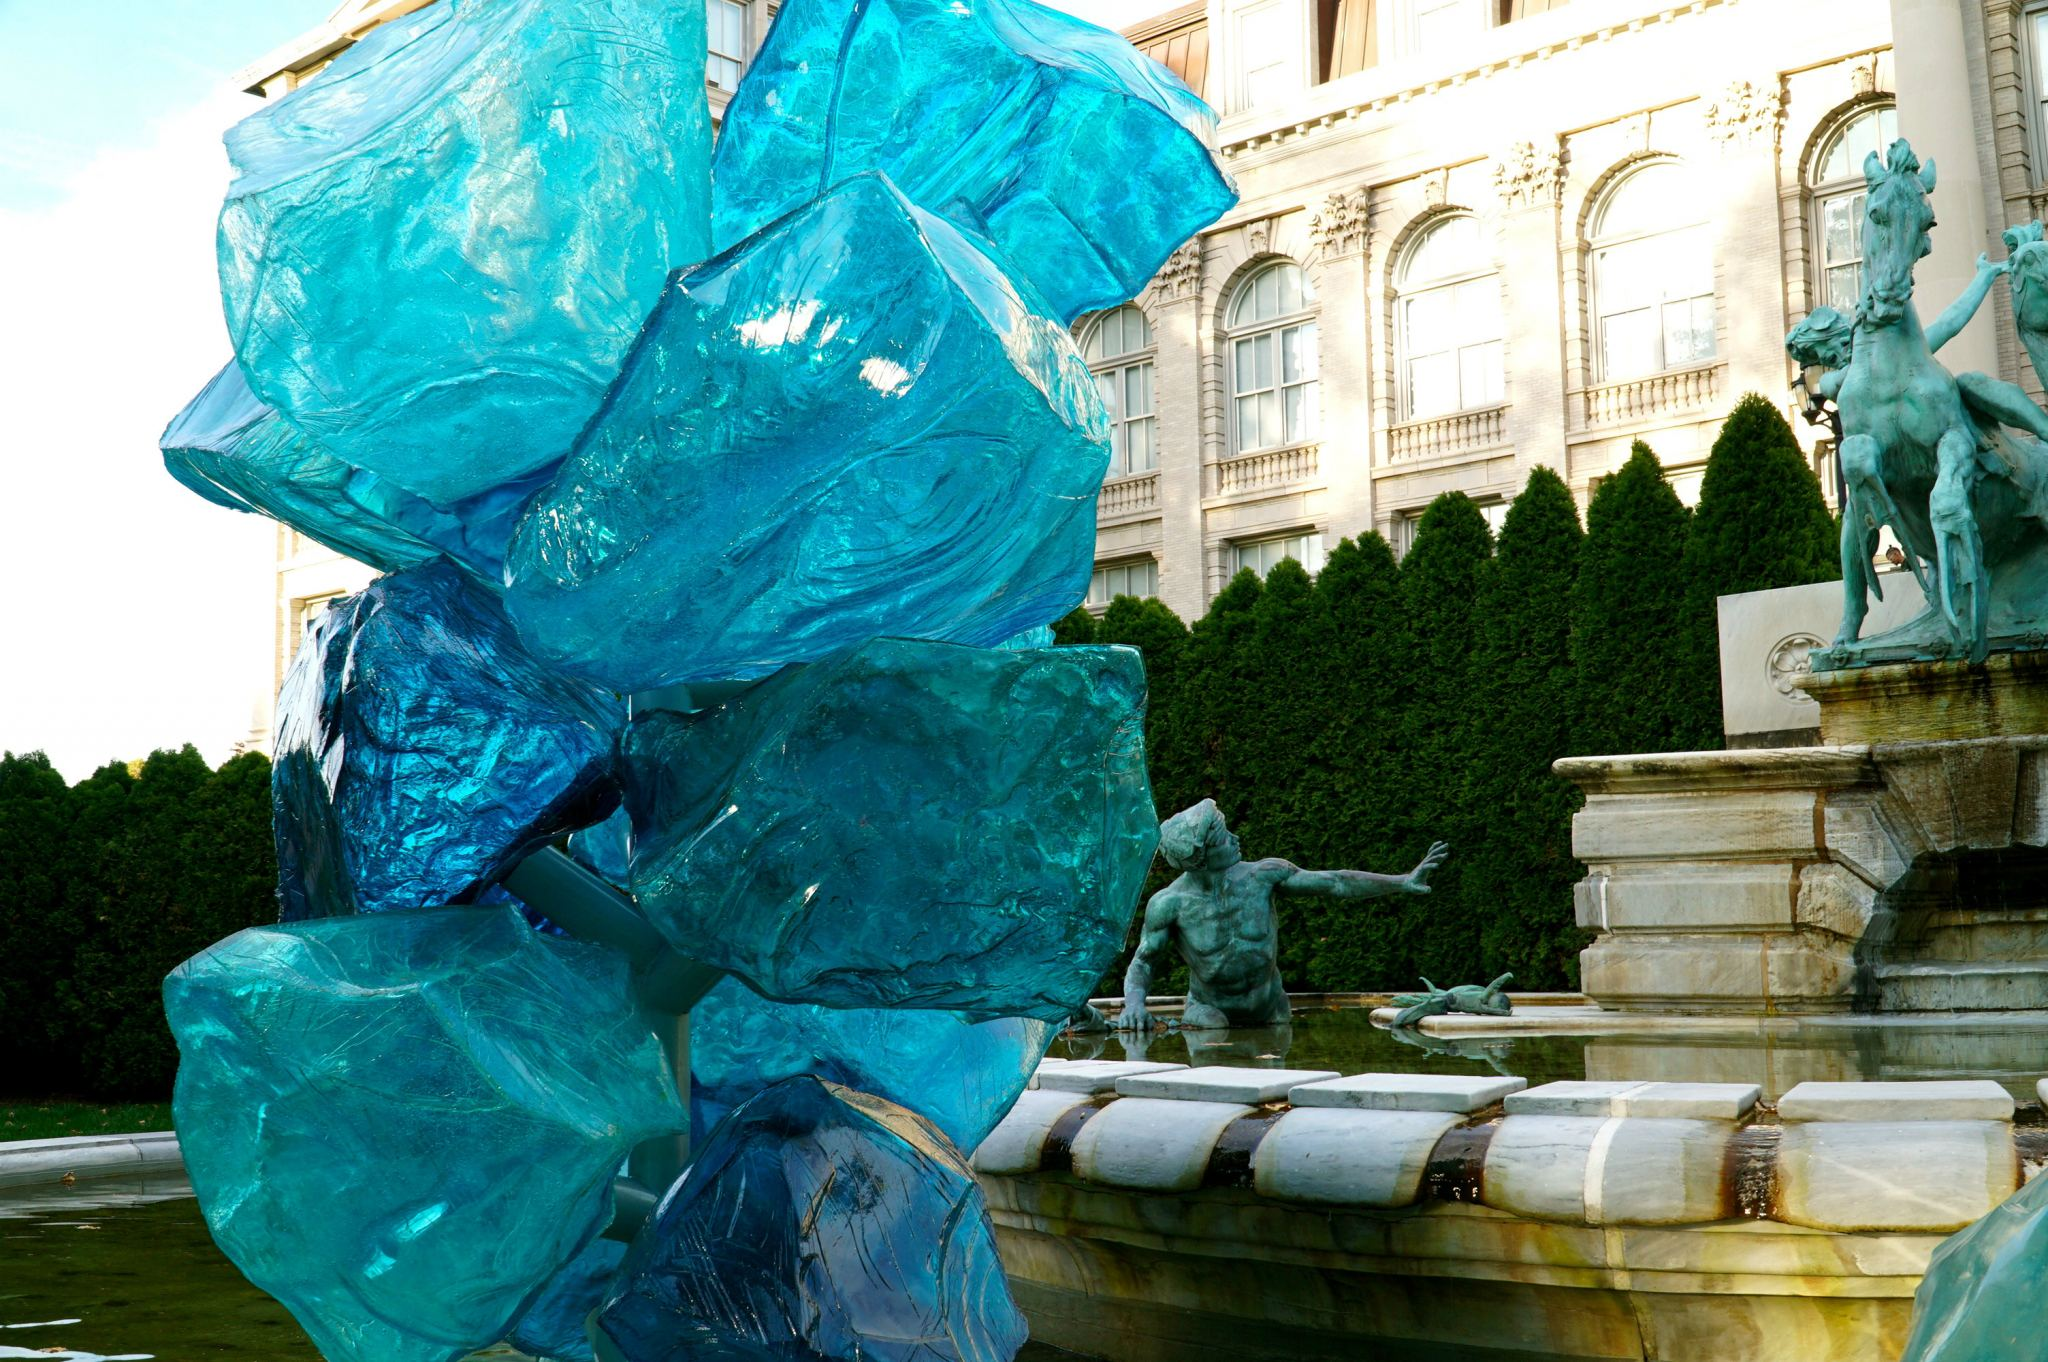 Admiring the beautiful blue crystals at the Chihuly exhibition at the New York Botanical Garden.